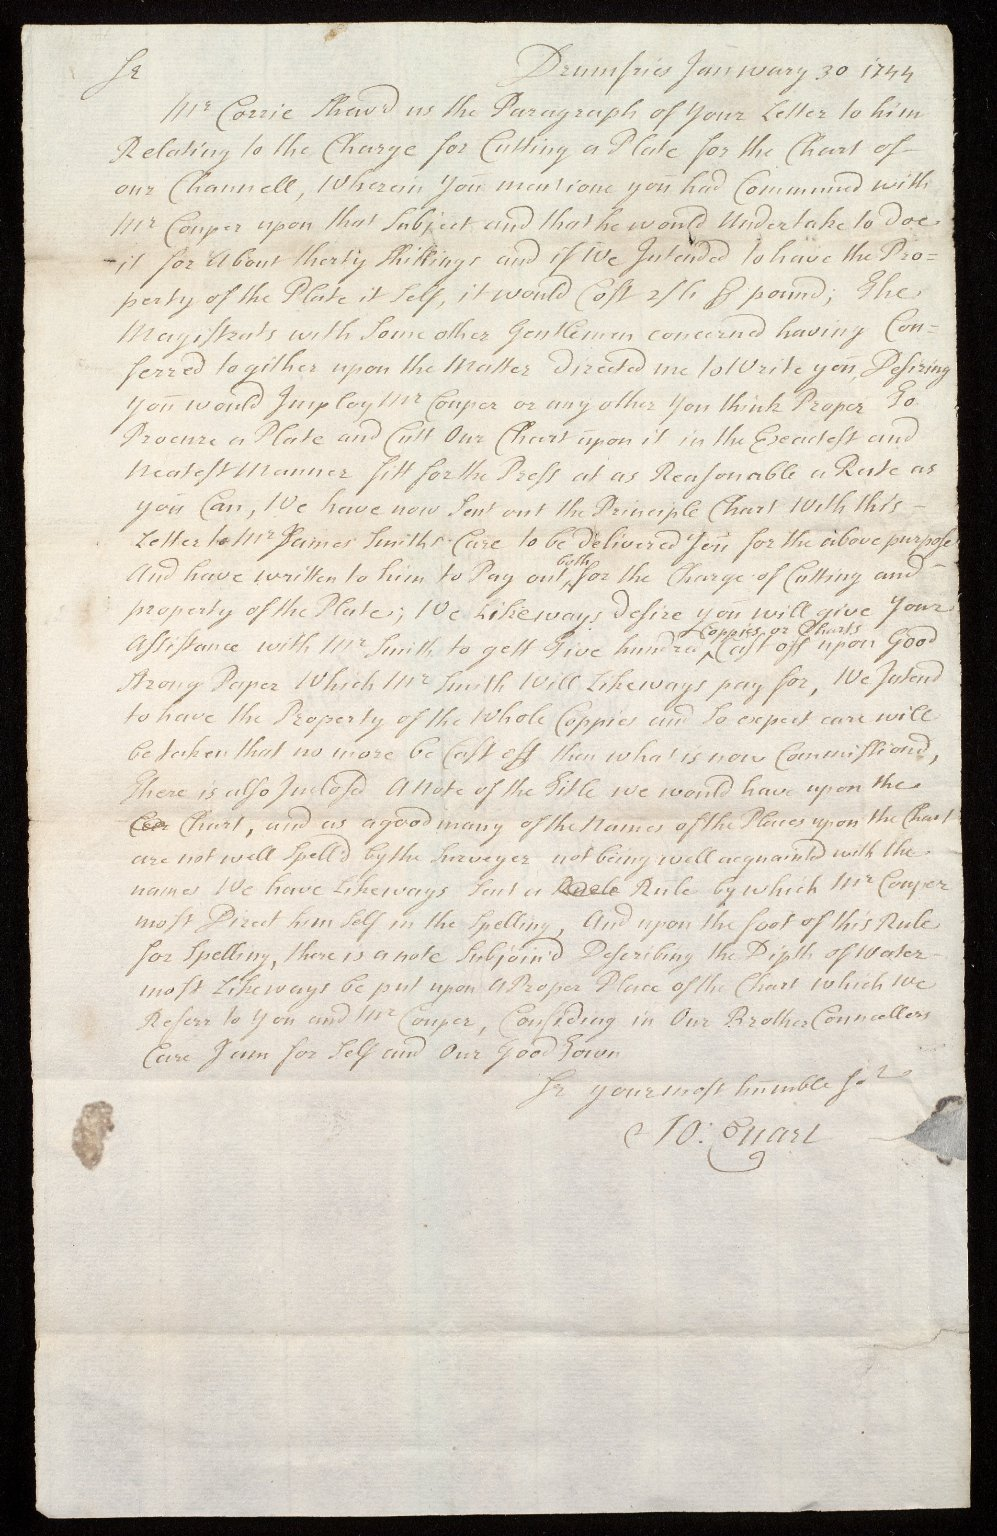 [Letter from Provost Joseph Ewart, Dumfries, to George Clerk of Dumfries regarding the engraving and printing of Thomas Winter's chart of the Solway Firth (1742) by Richard Cooper] [1 of 2]